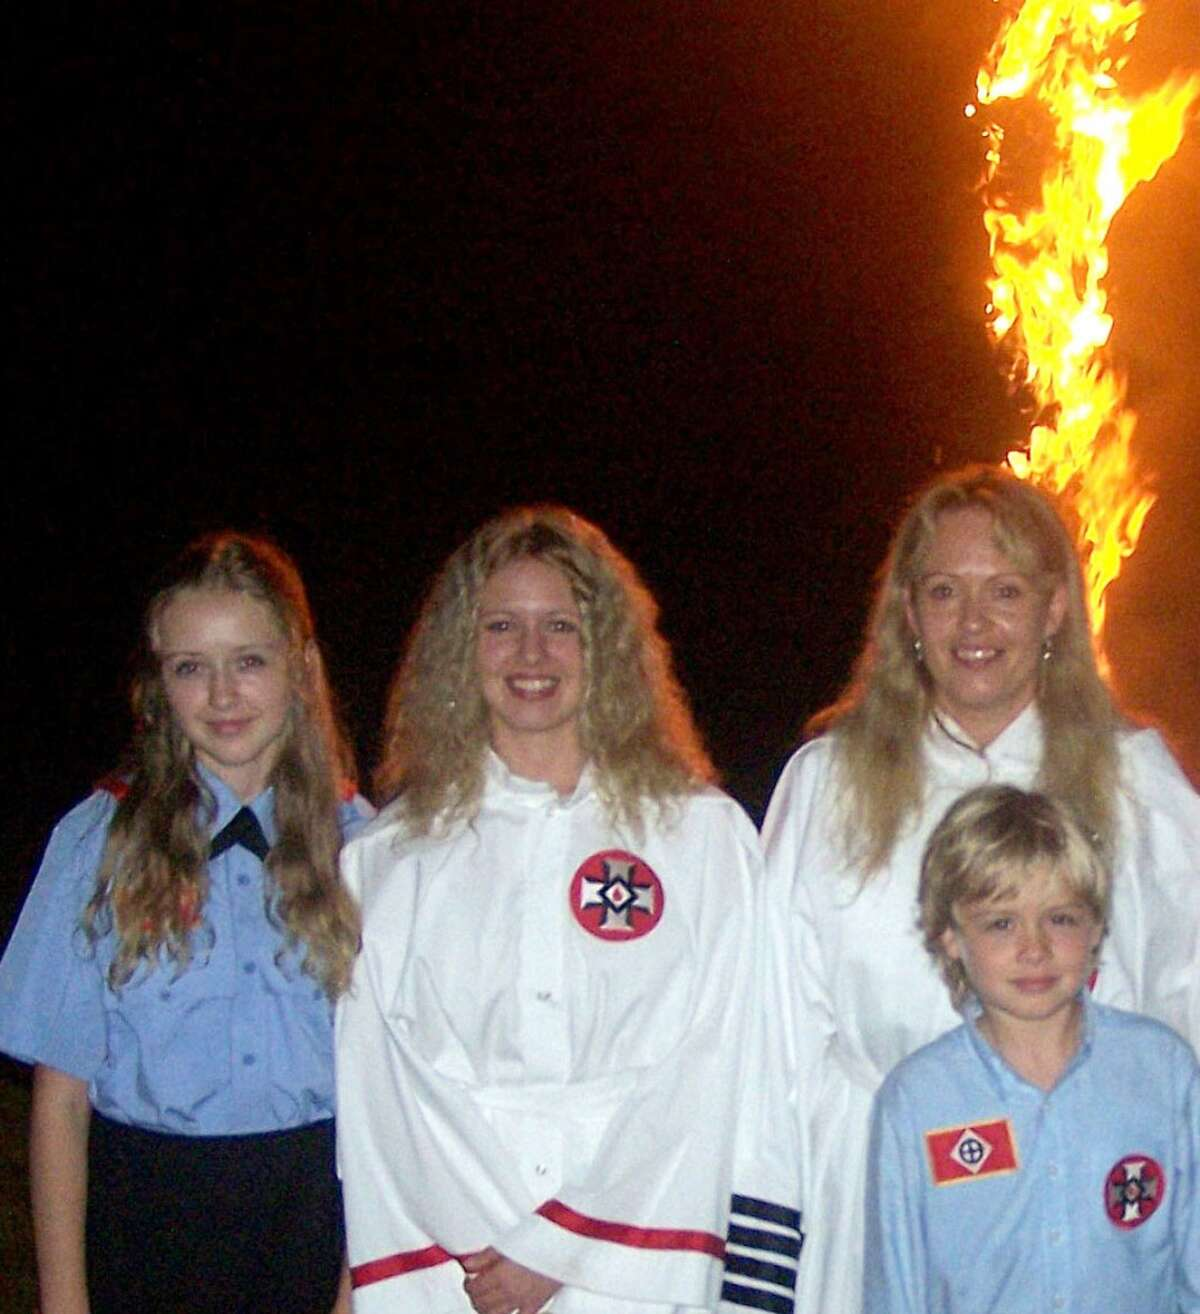 ARKANSAS Chapters in Vanndale, Harrison. Here Shelby, Charity, Rachel and Andrew Pendergraft, attend a Cross Lighting ceremony at the Christian Revival Center in 2008 in Bergman, Arkansas. Charity and Shelby are not allowed to mix with people of other races, and have been indoctrinated into believing they must marry a white man and bear children to help white people from becoming extinct.